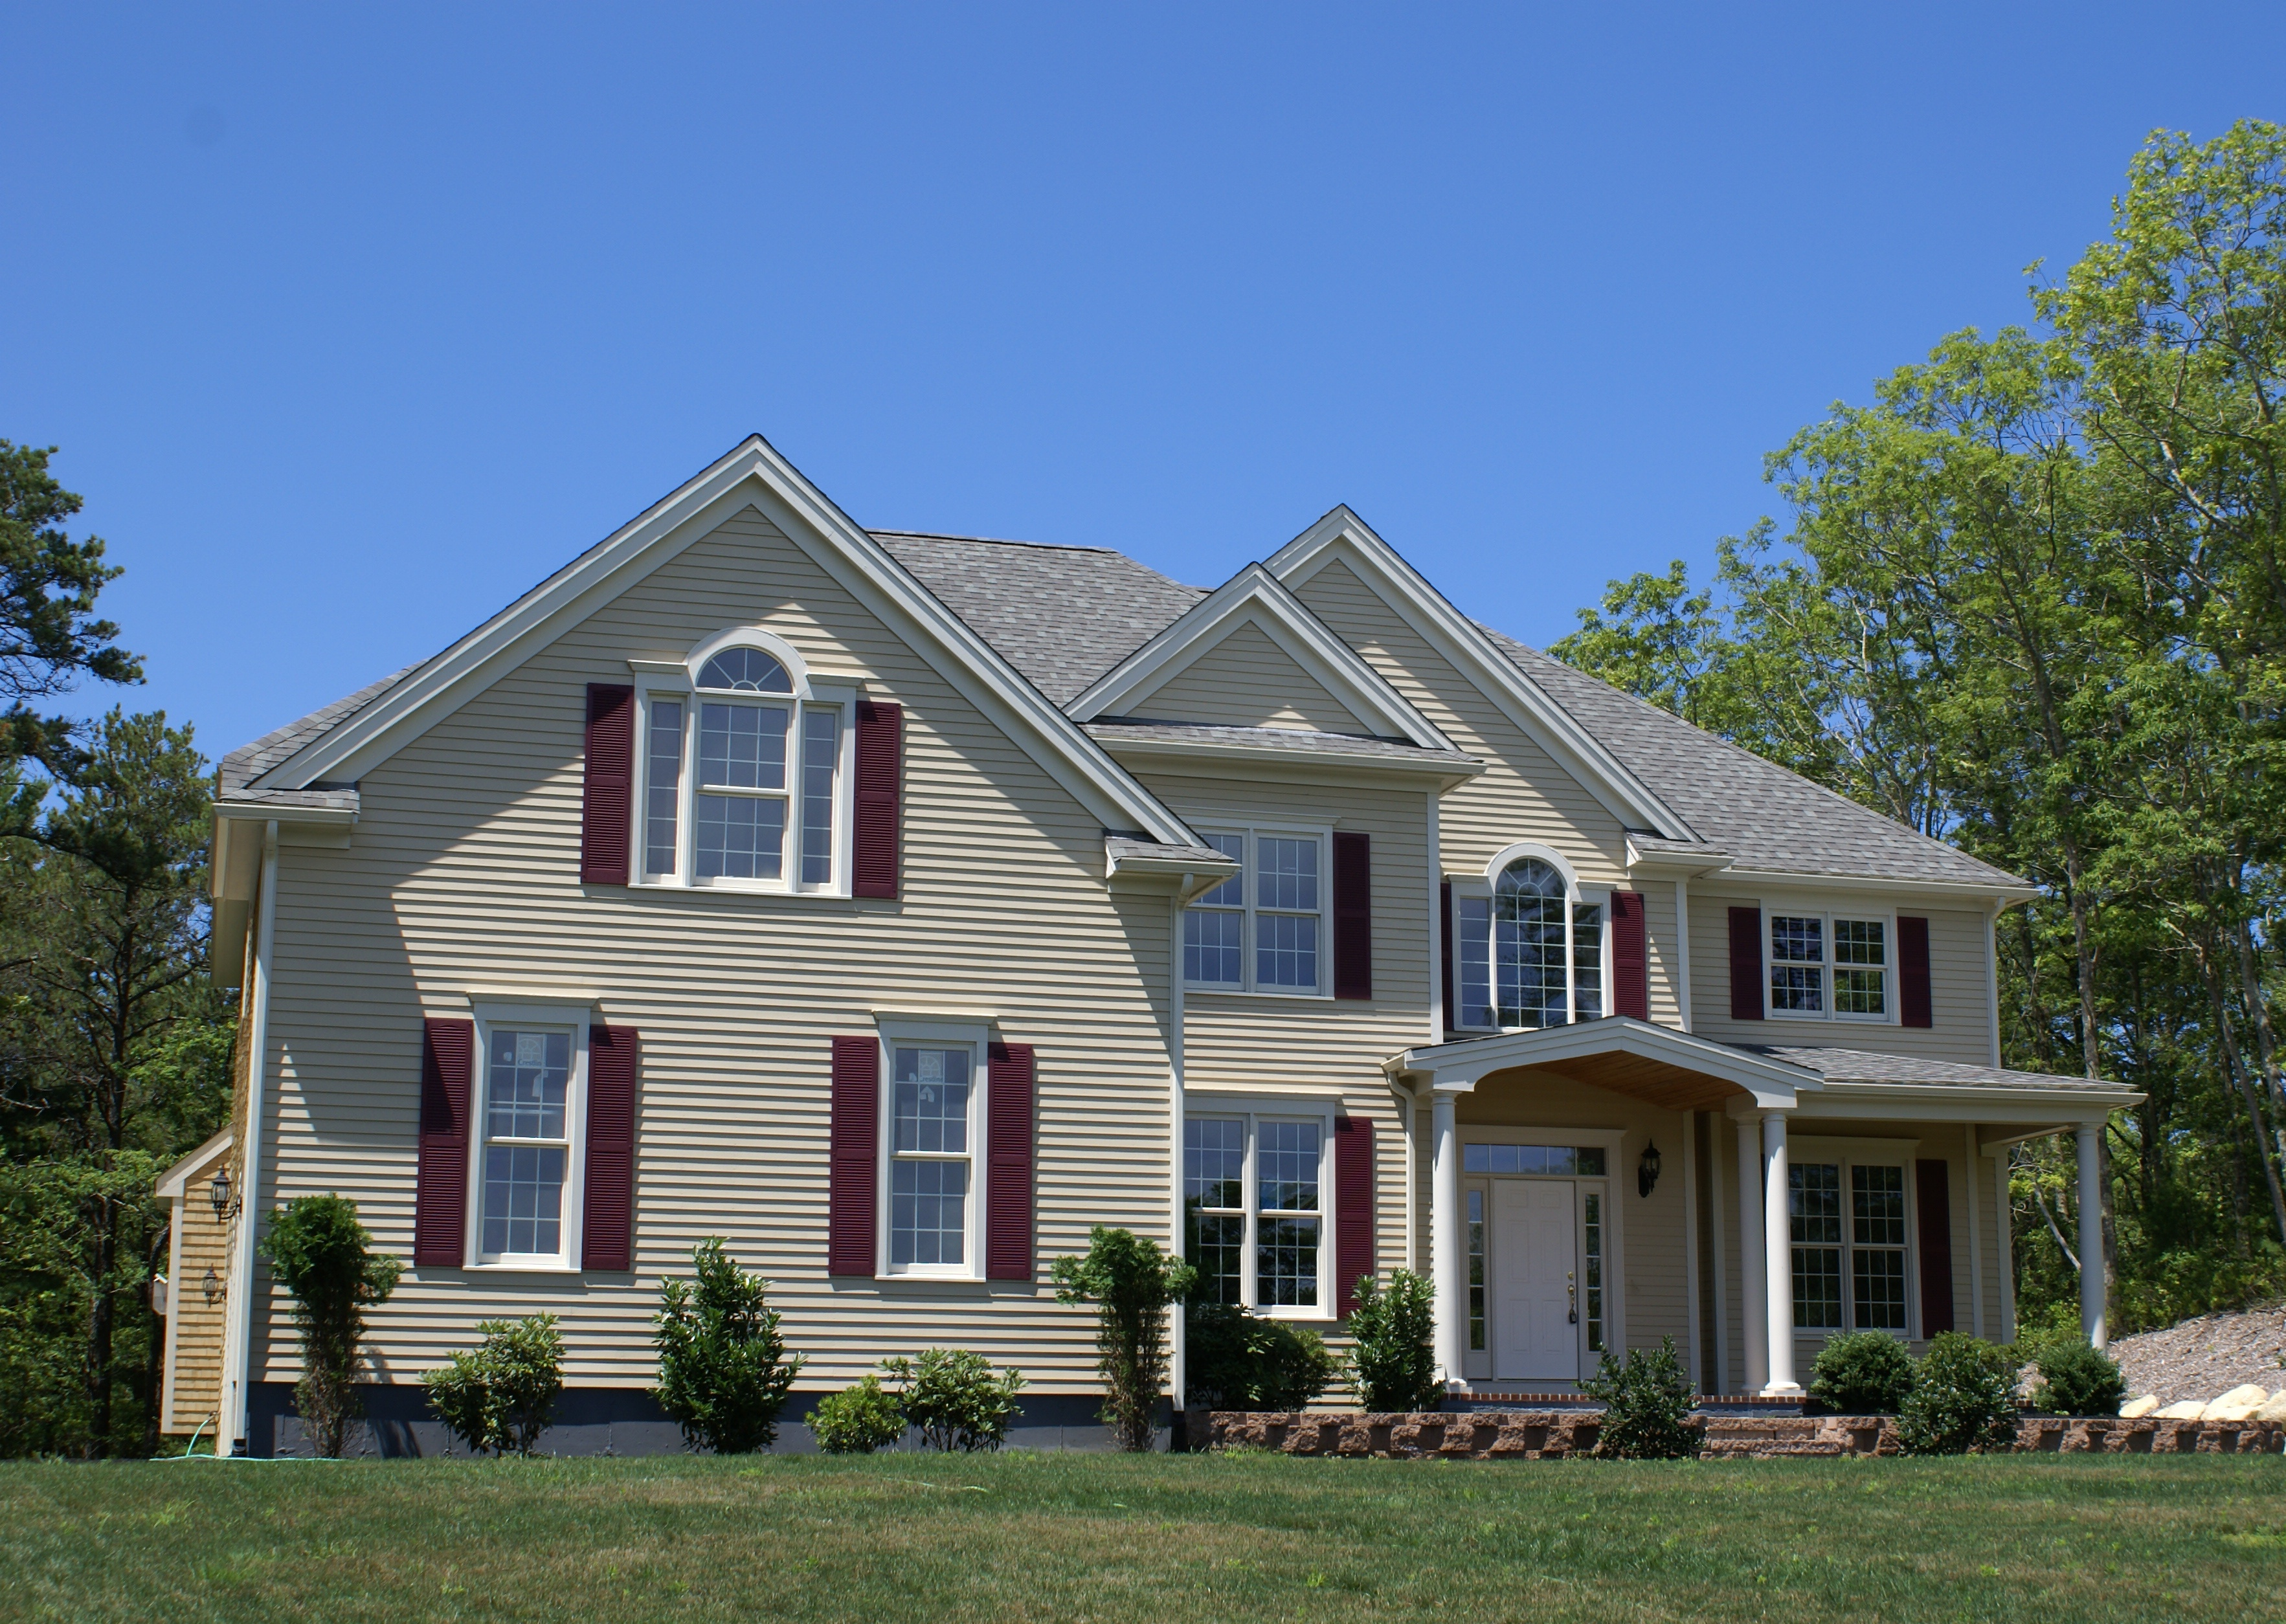 Vinyl Siding Offer Best Stl House Siding Company Trusted